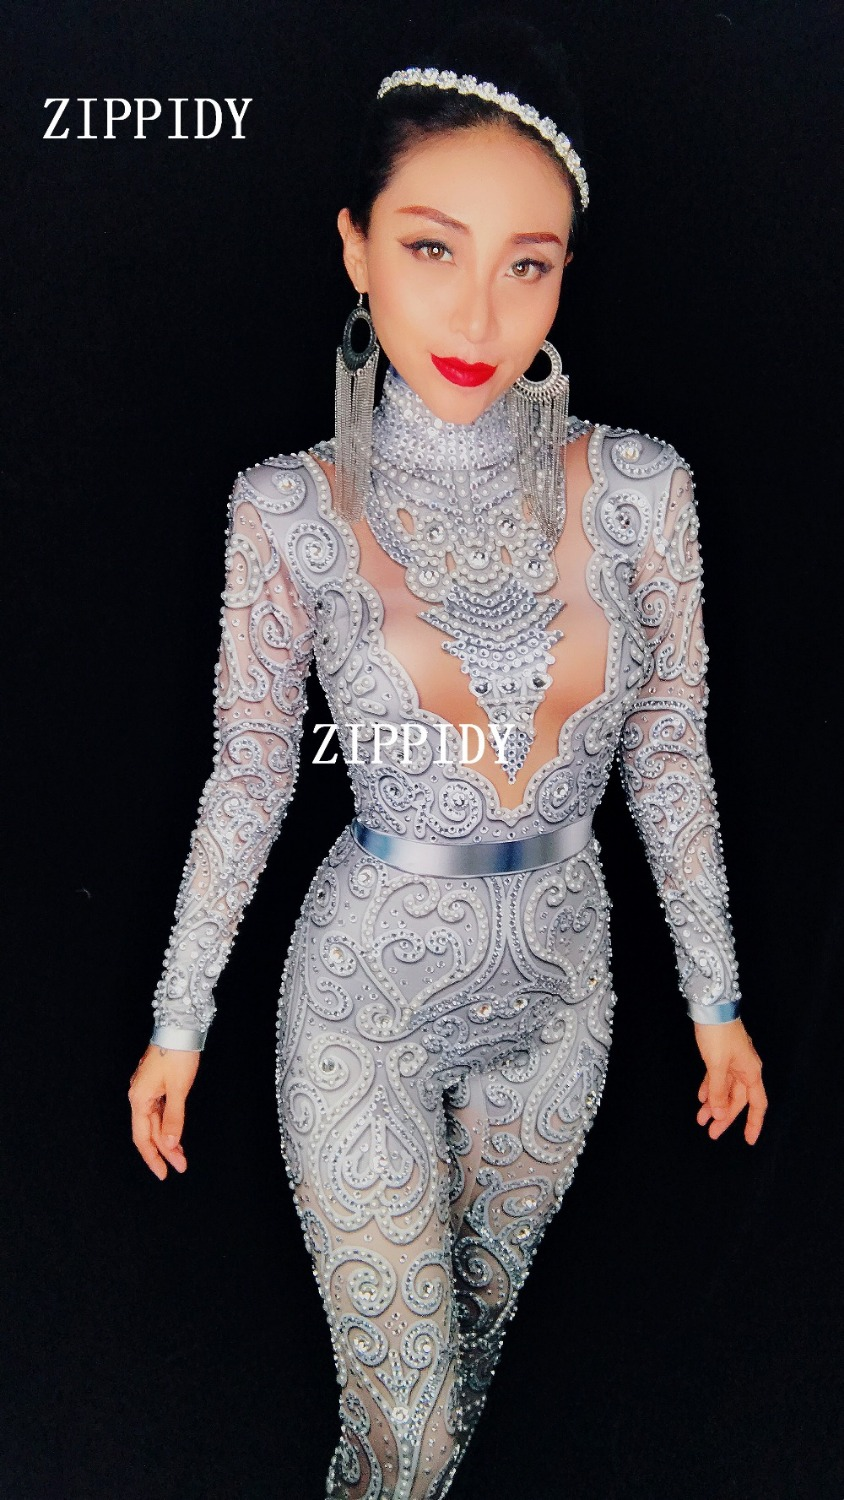 Glisten Silver Crystals Jumpsuit Long Sleeves Stretch Pearl Outfit Female Singer DS Nightclub Womens Party Wear Sexy Bodysuits